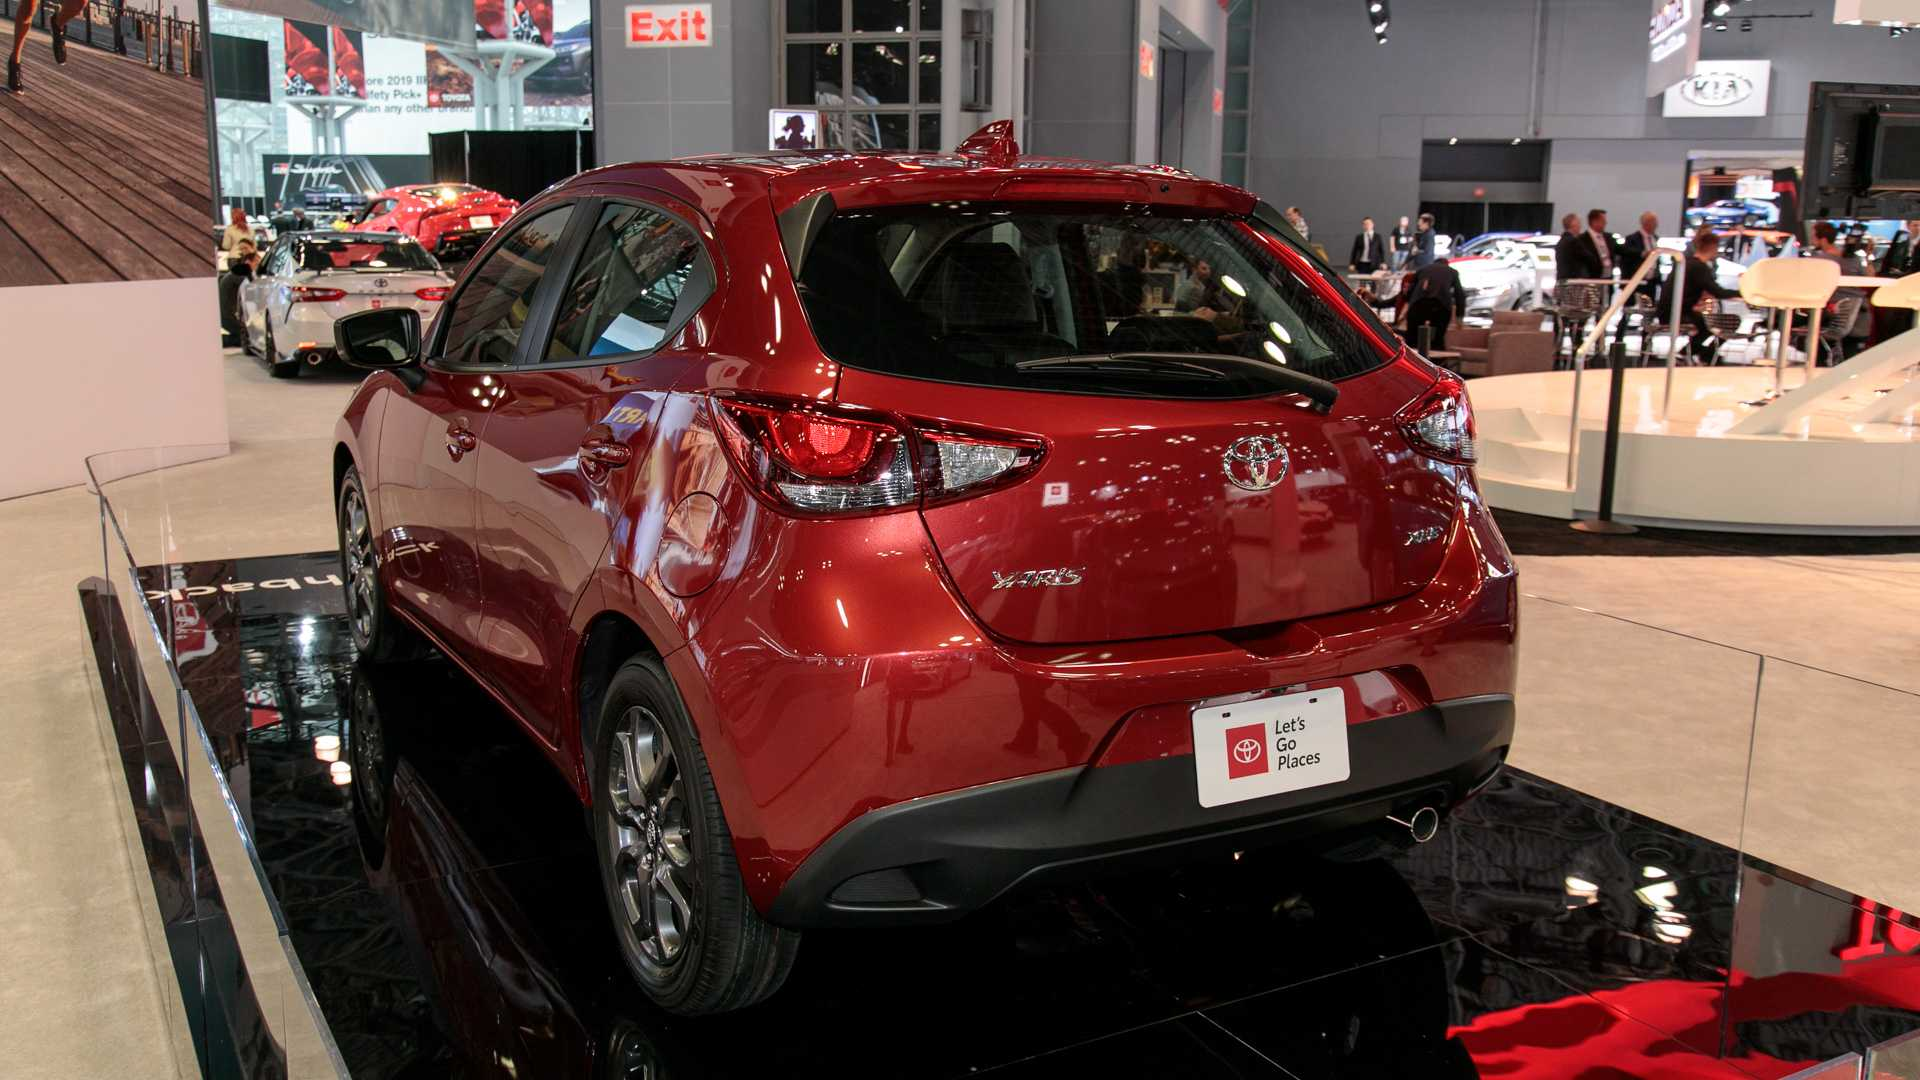 18 All New Mazda 2 Facelift 2020 History for Mazda 2 Facelift 2020